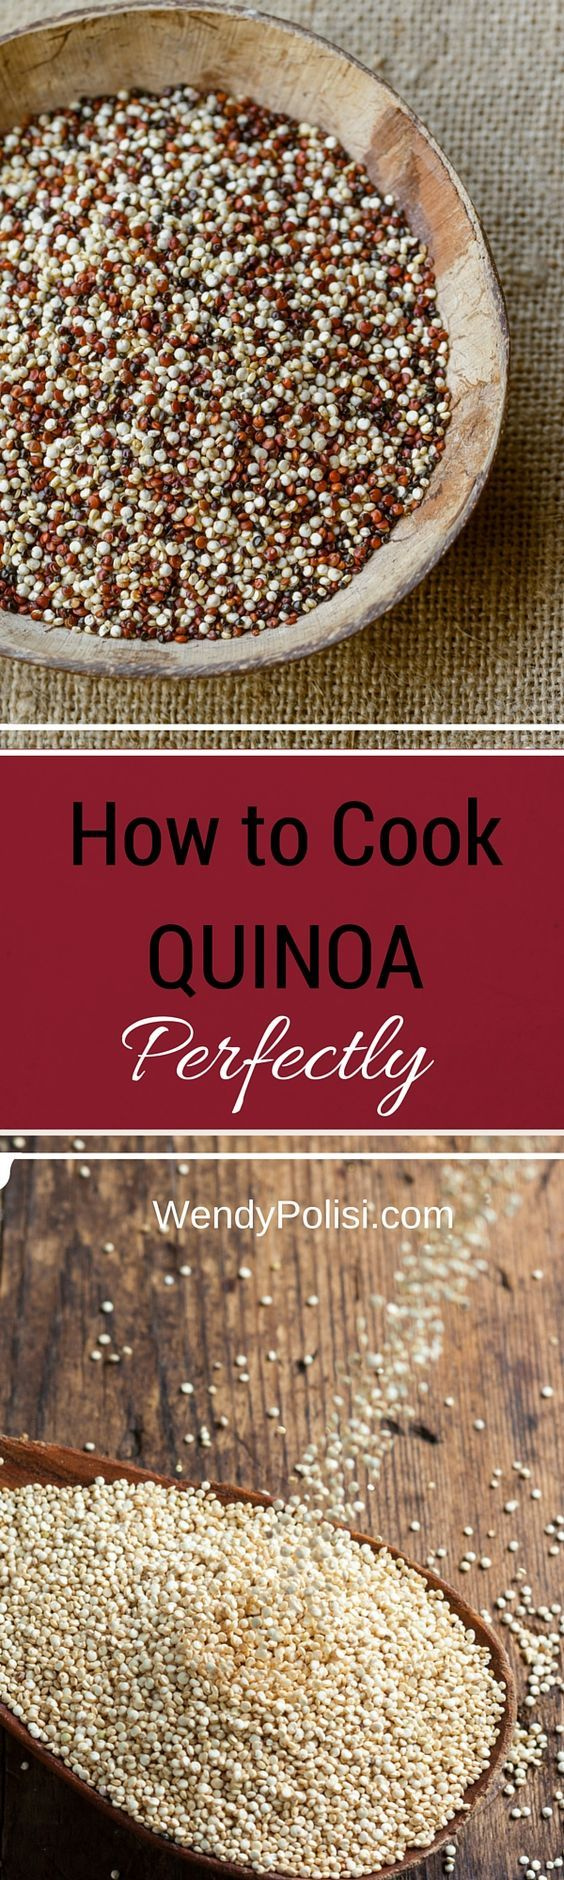 How to Cook Quinoa Perfectly - After more than 700 quinoa recipes, I've learn a thing or two about how to cook quinoa perfectly! Here are my best tips for cooking quinoa perfectly every time.